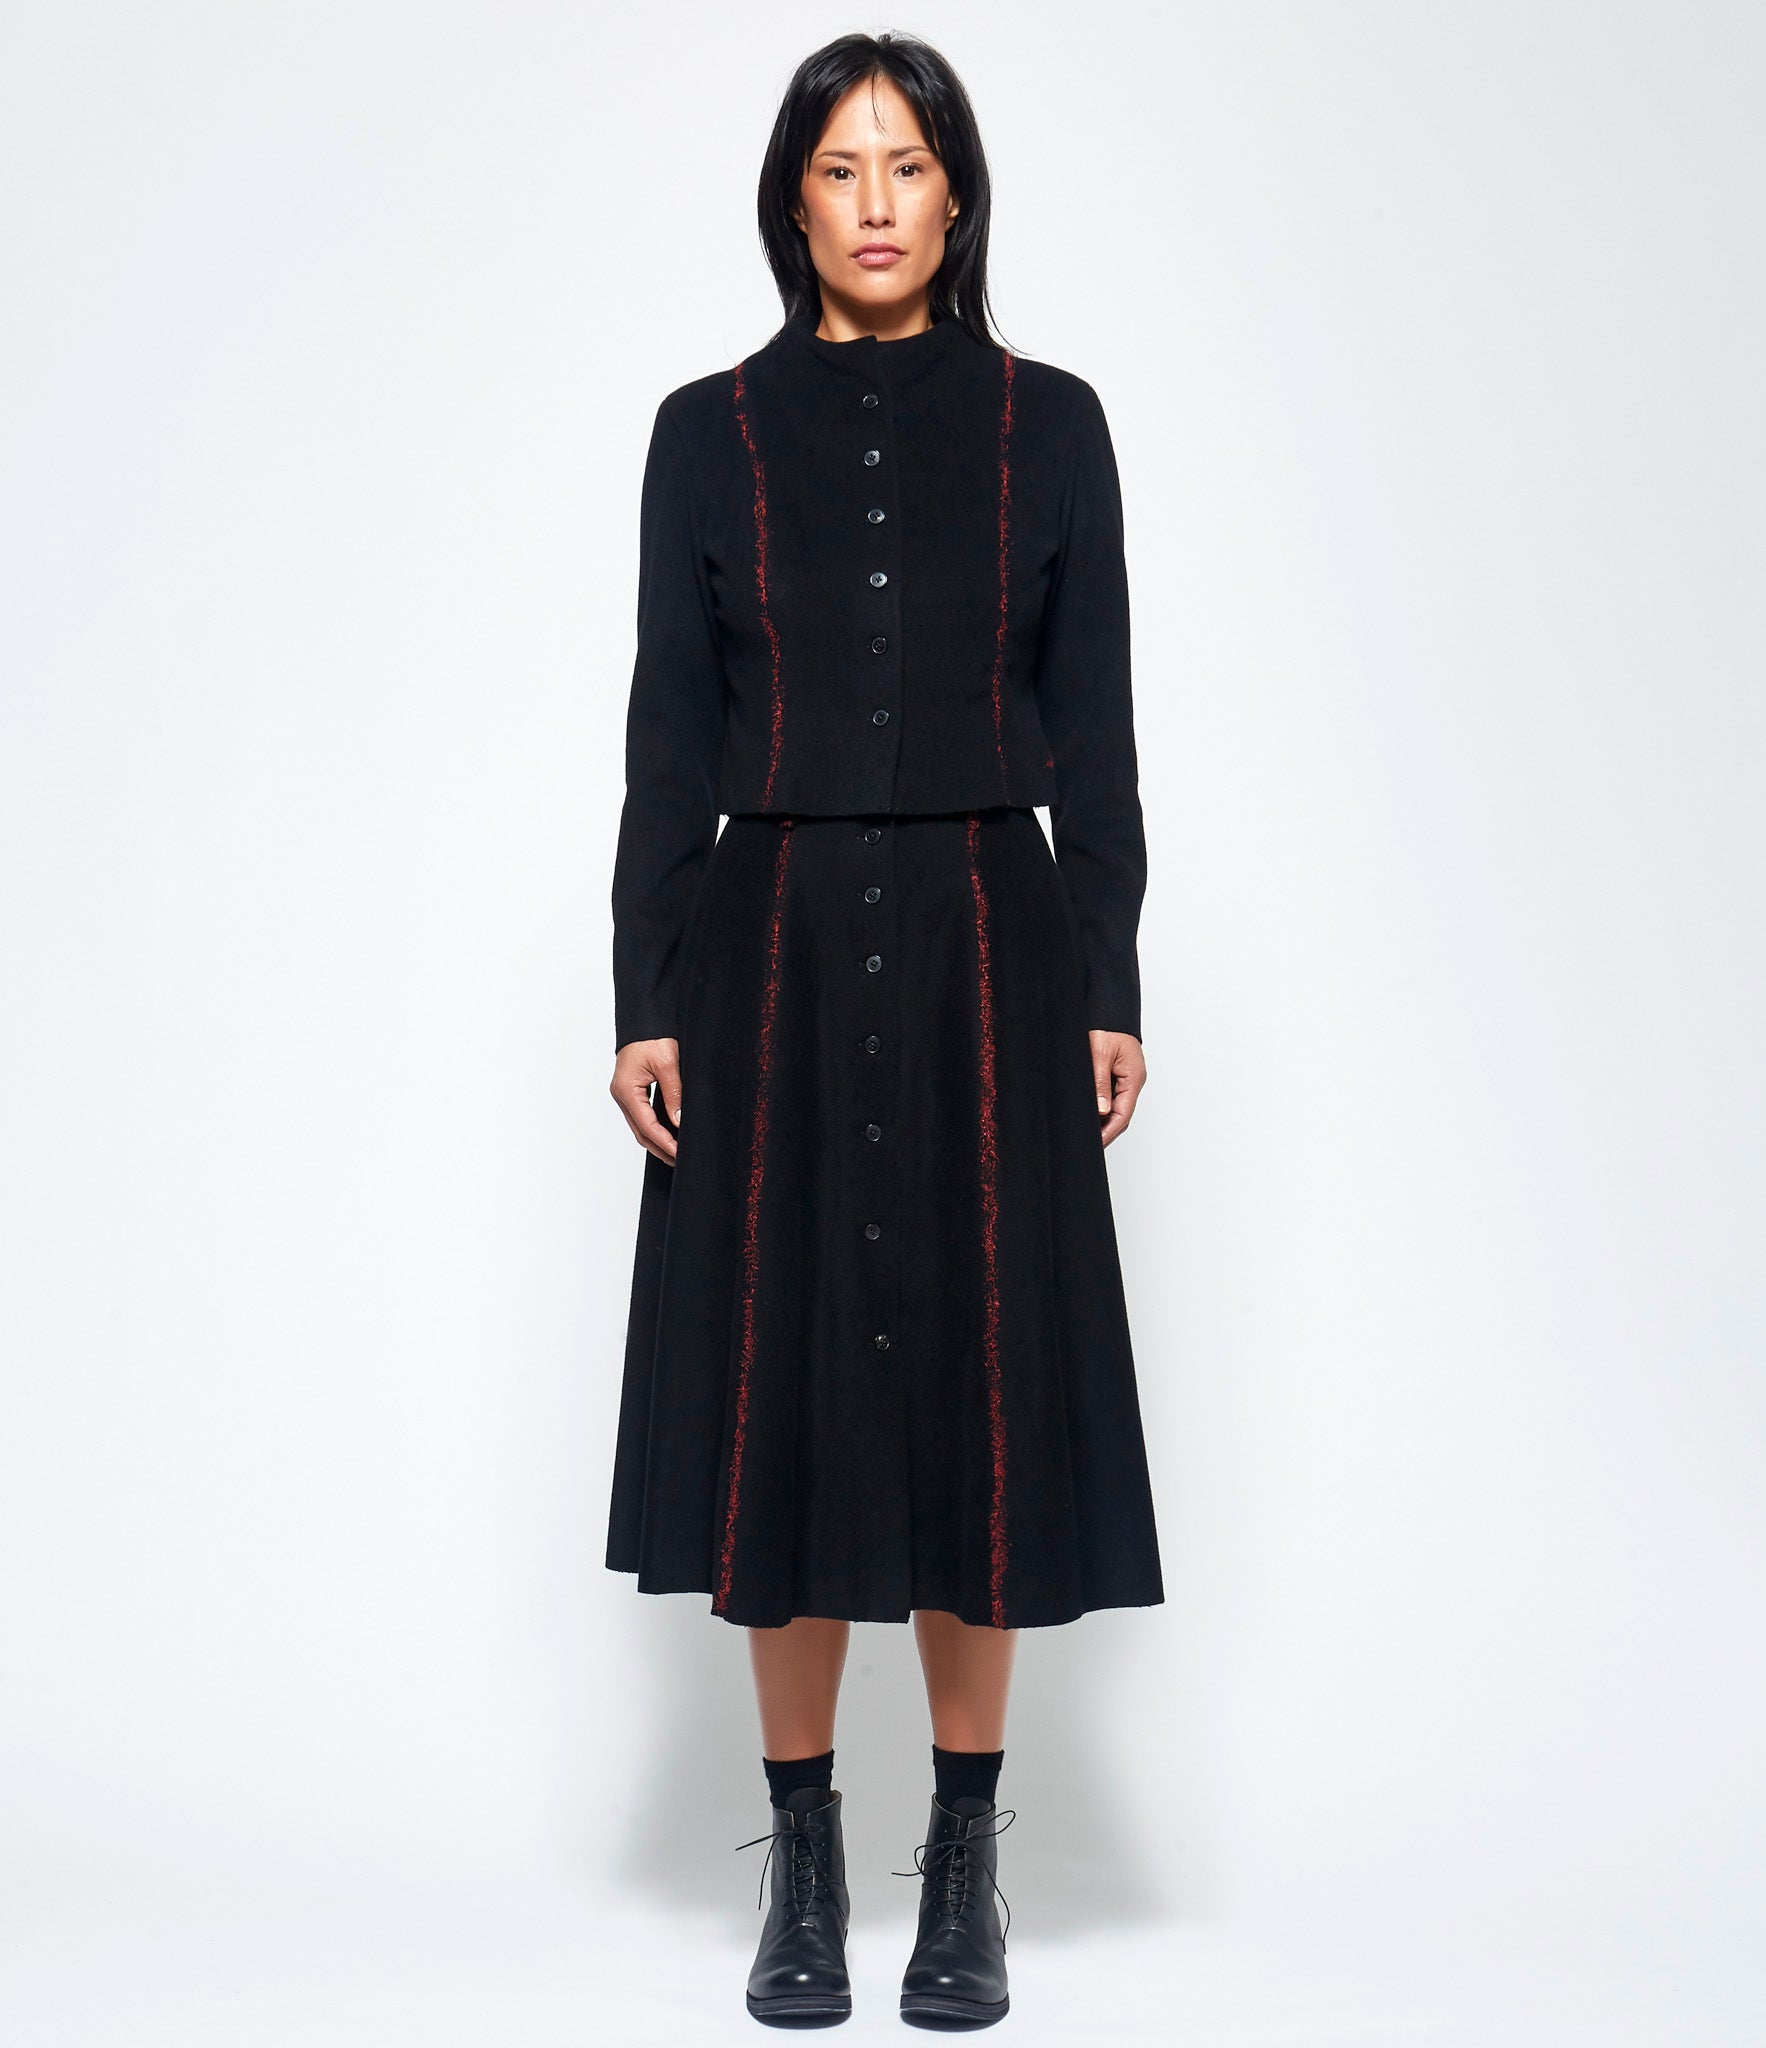 m.a+ 8 Panel Buttoned Skirt